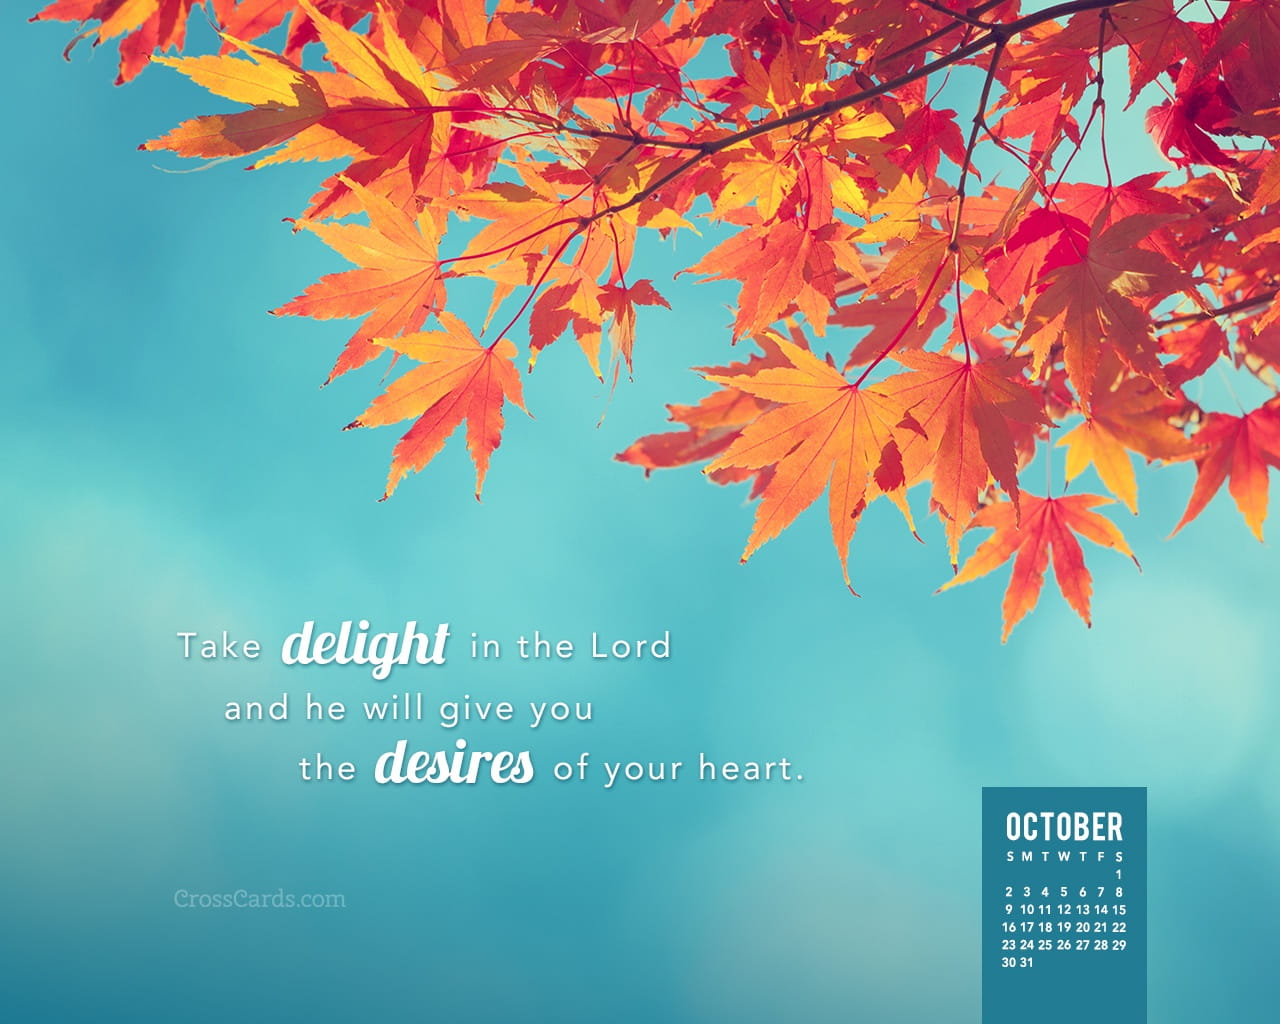 Fall Wallpaper Free Iphone October 2016 Take Delight In The Lord Desktop Calendar